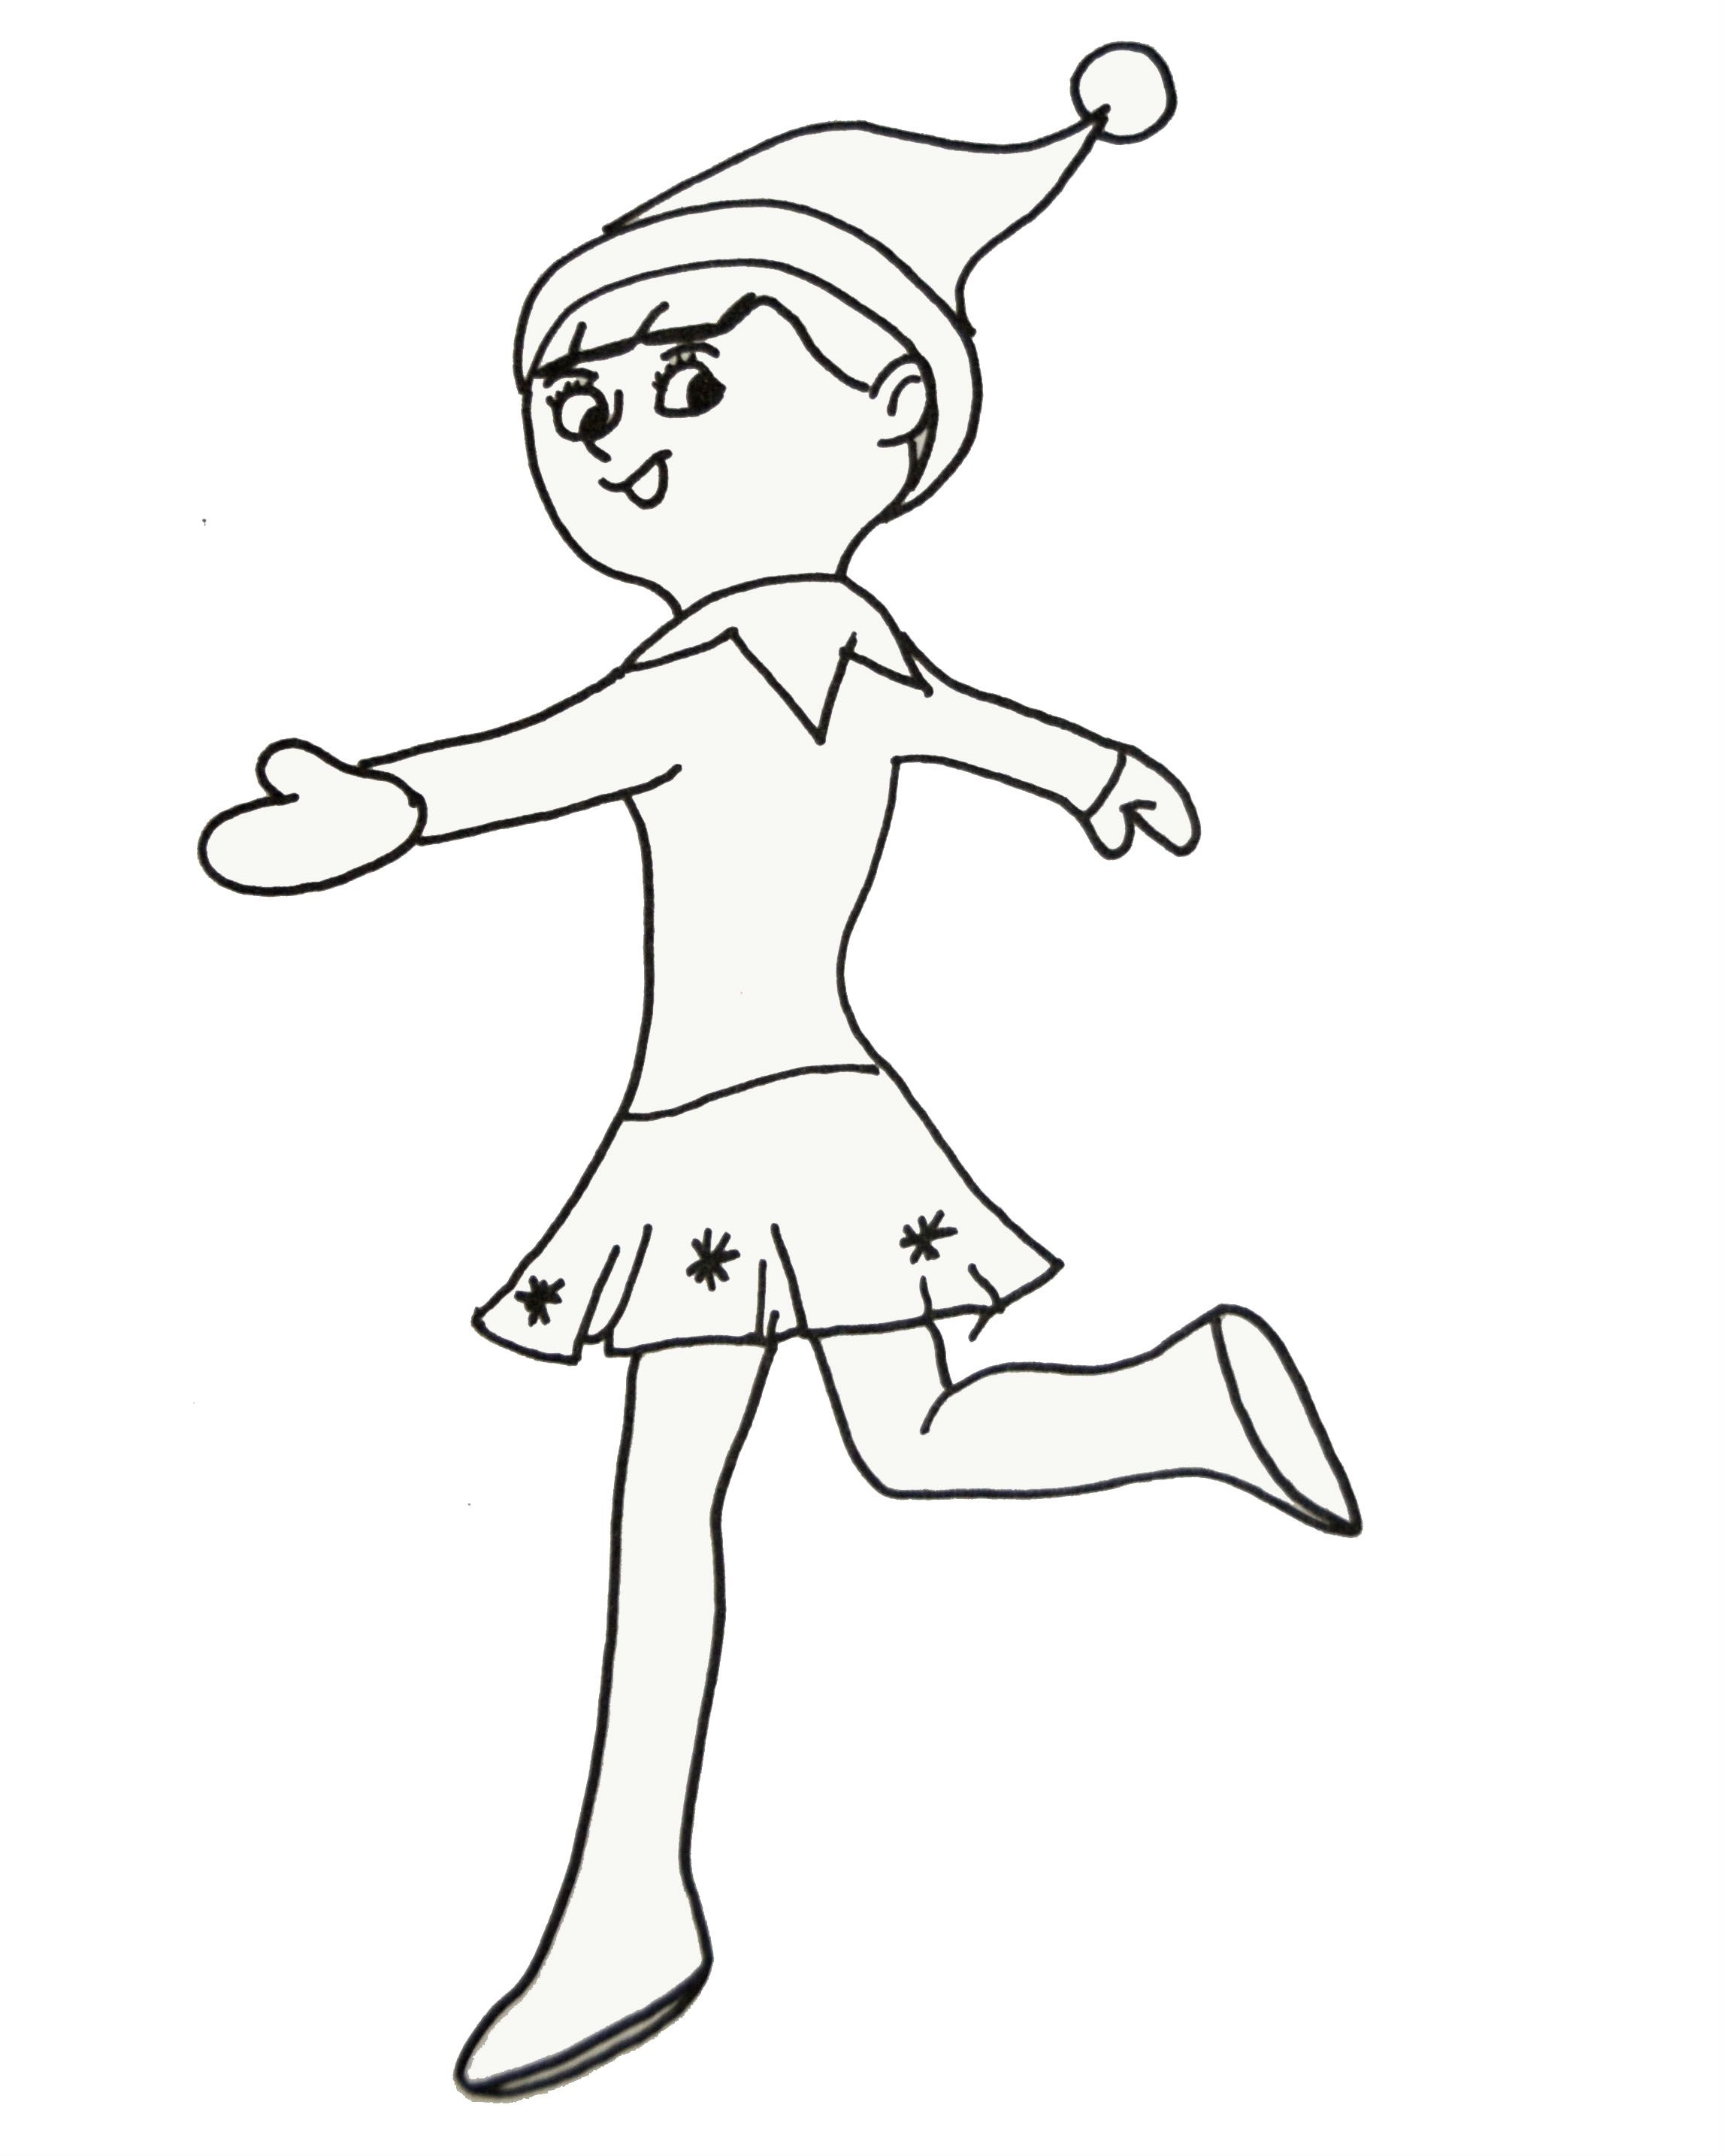 Elves Longer Dancing Coloring Pages For Kids Csz Printable Elves Coloring Pages Fo Christmas Coloring Pages Coloring Pages For Girls Coloring Pages For Kids